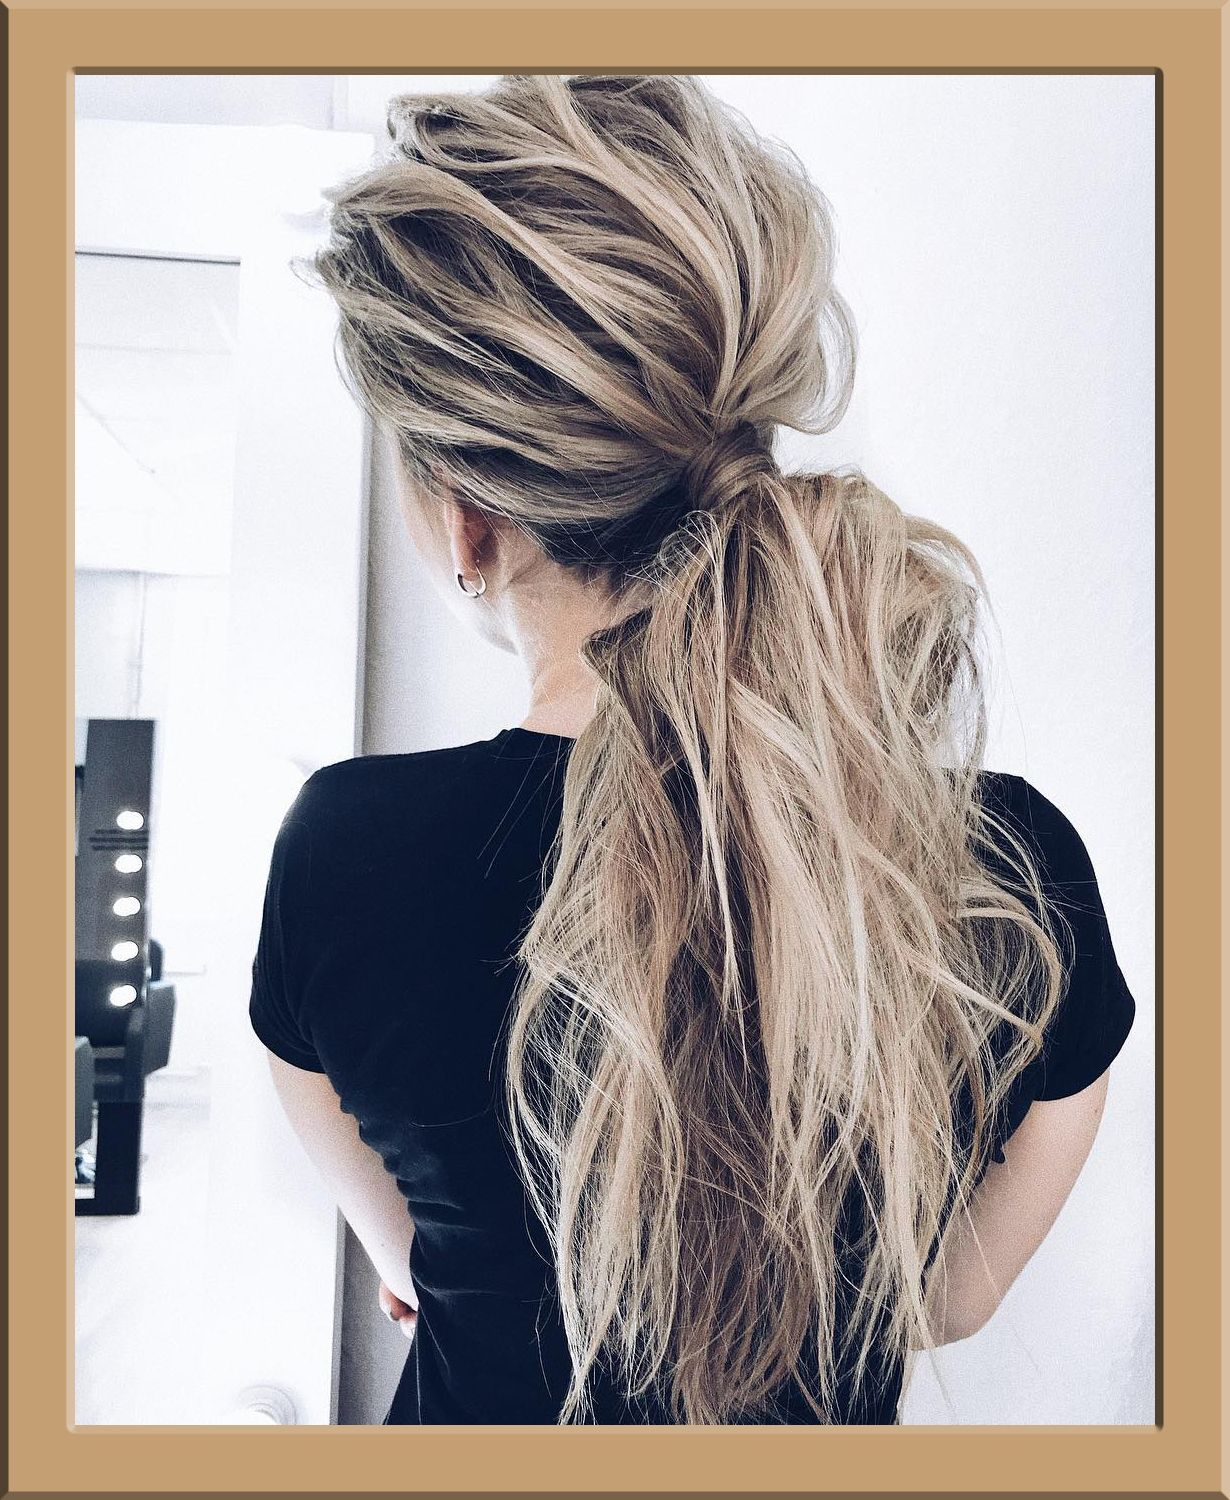 Strange Facts About Hair Styles for 2021